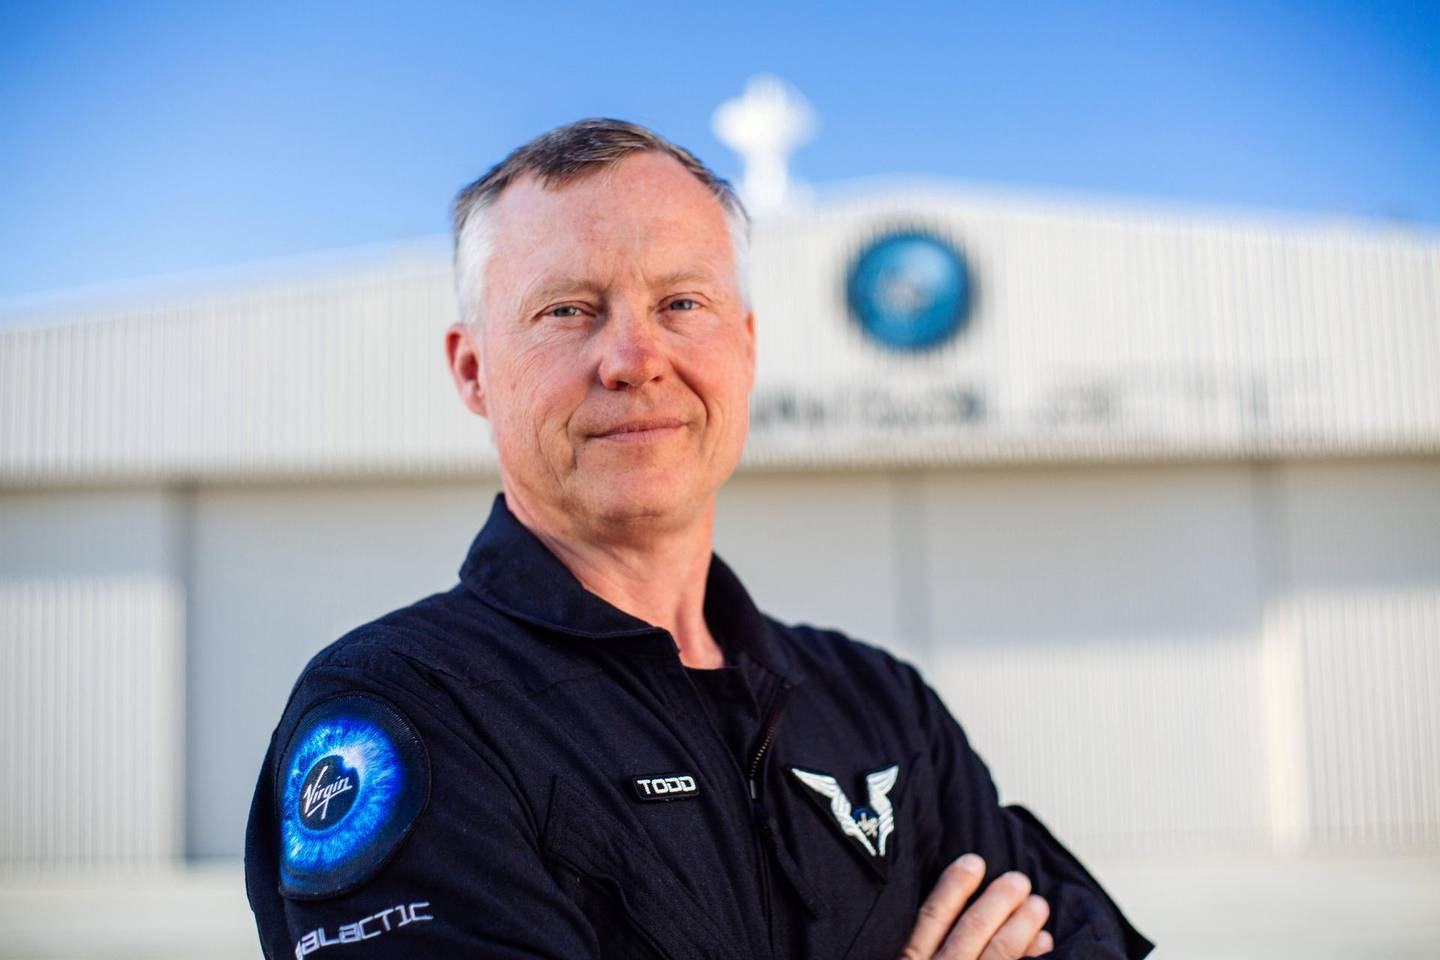 Virgin Galactic Pilot and Vice President of Safety and Test, Todd Ericson